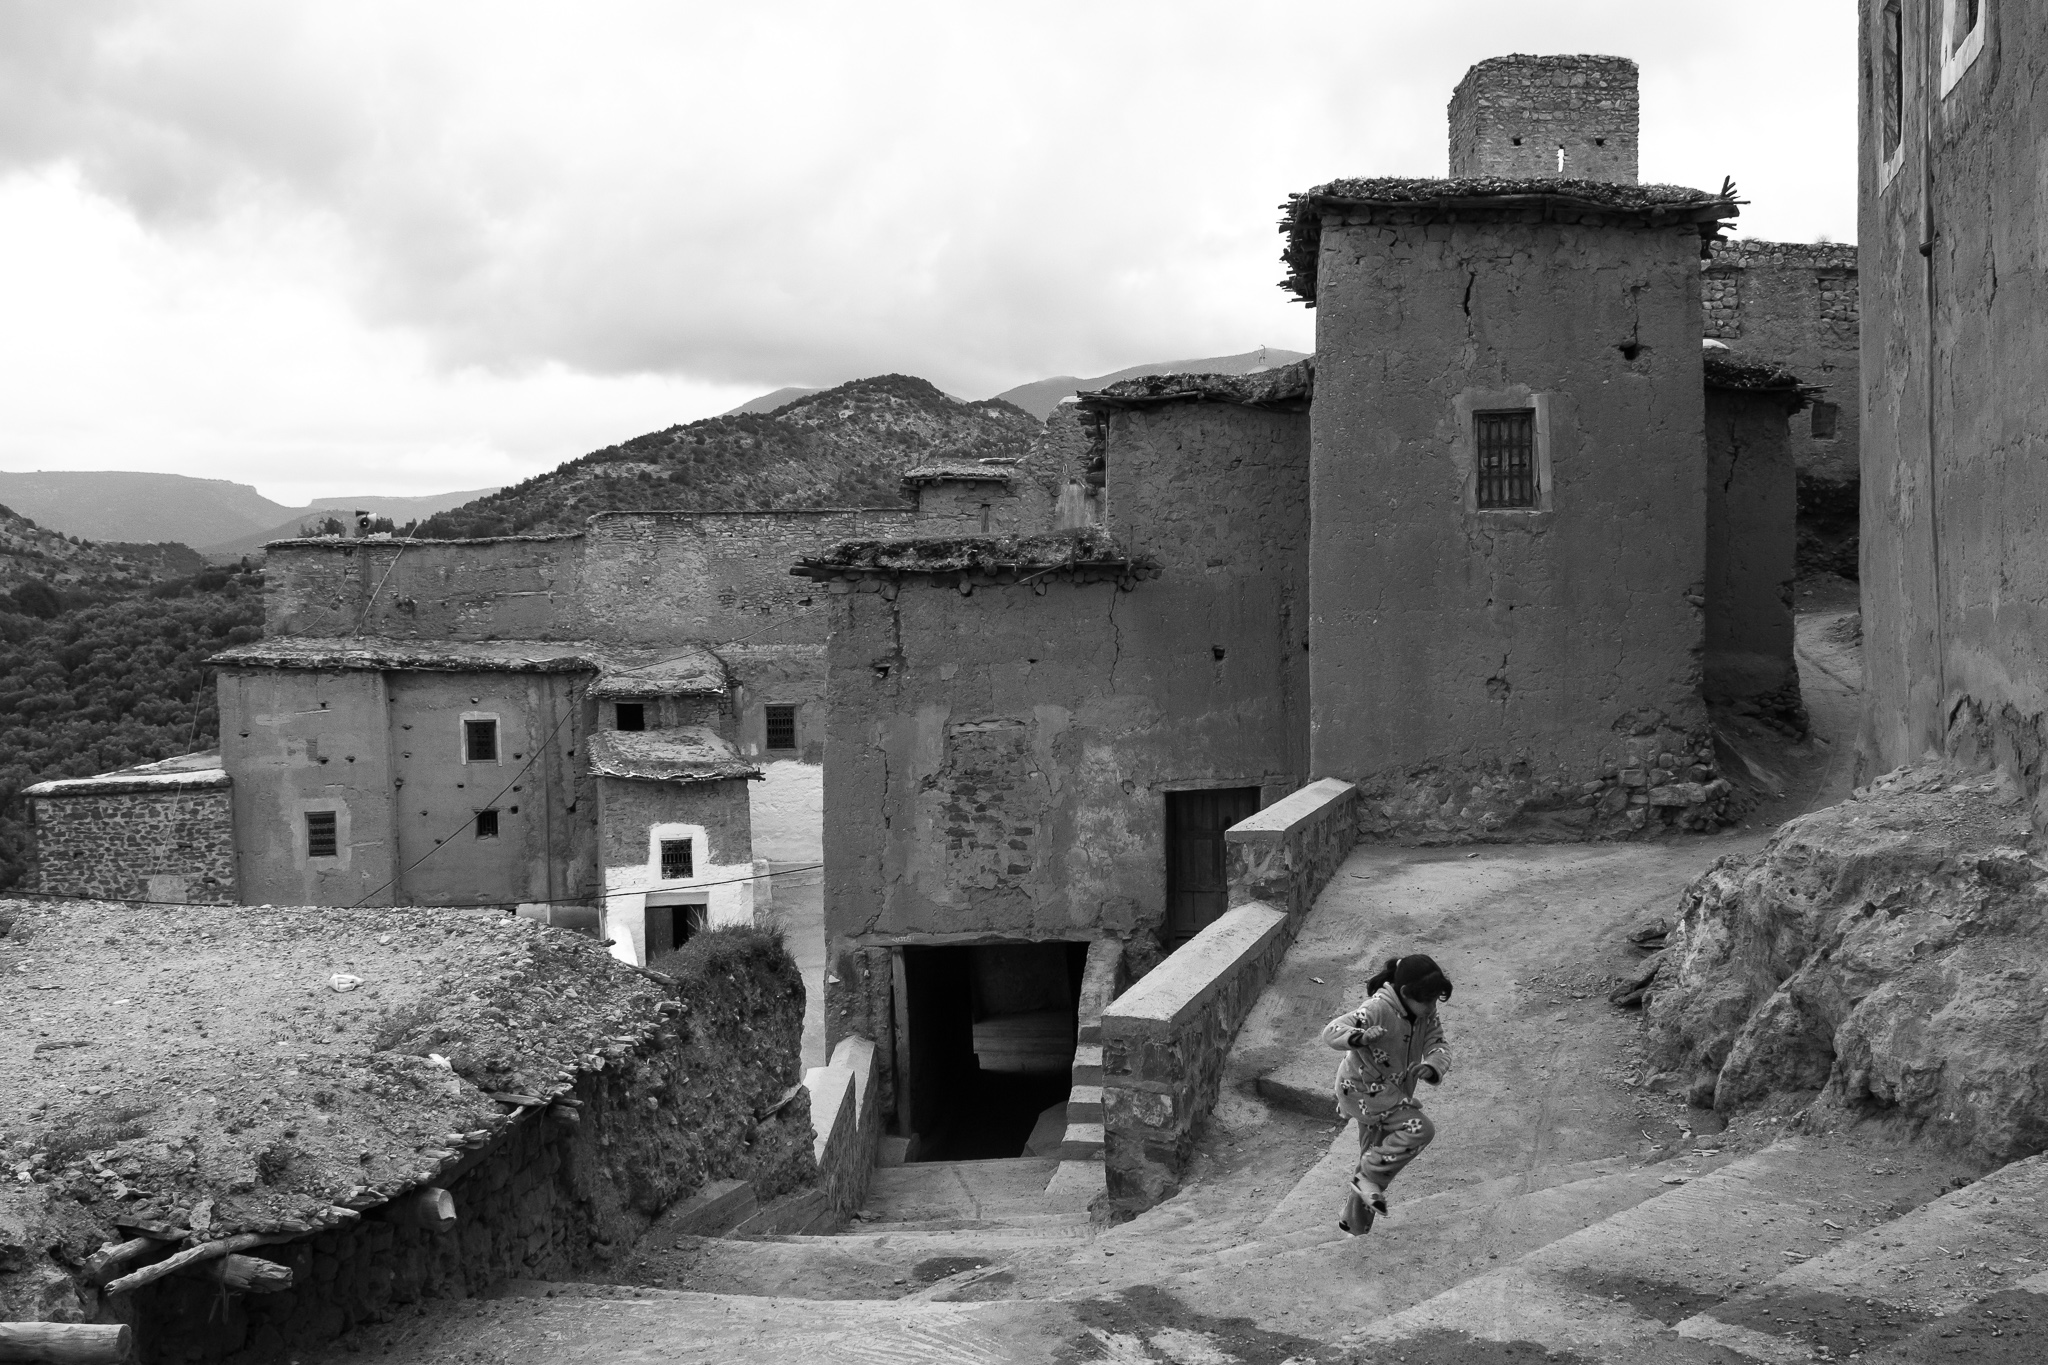 The village of Tanaghmeilt, Azilal, shows the typical constructions of Amazigh villages, made of straw and adobe.